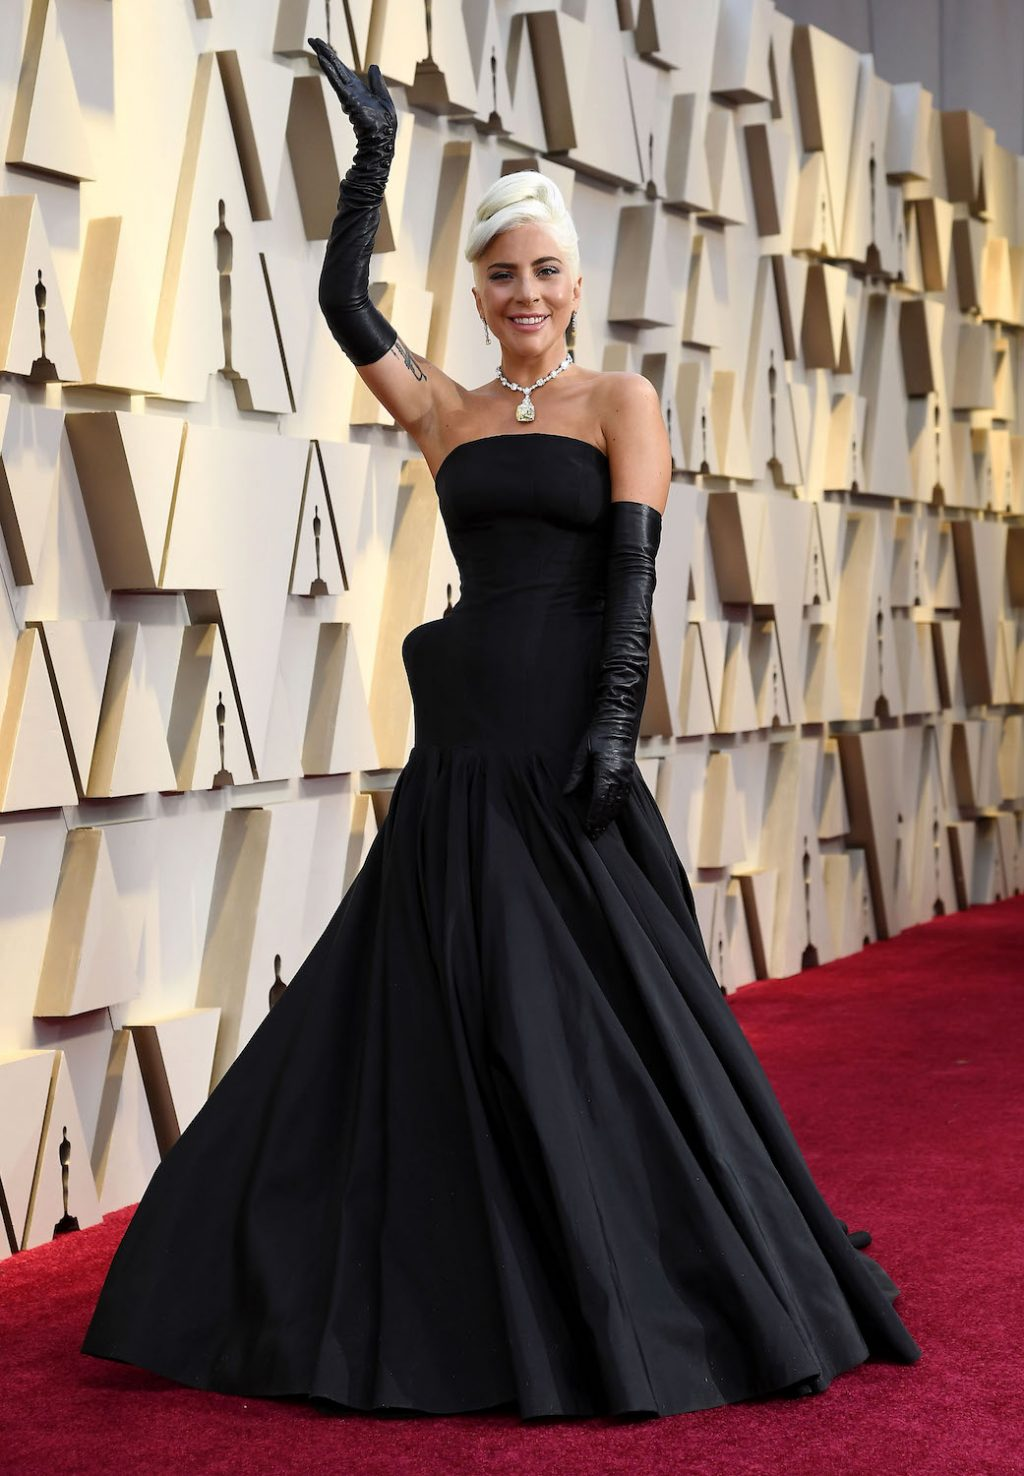 Lady Gaga Wins the Oscars Red Carpet in a $30 Million Necklace